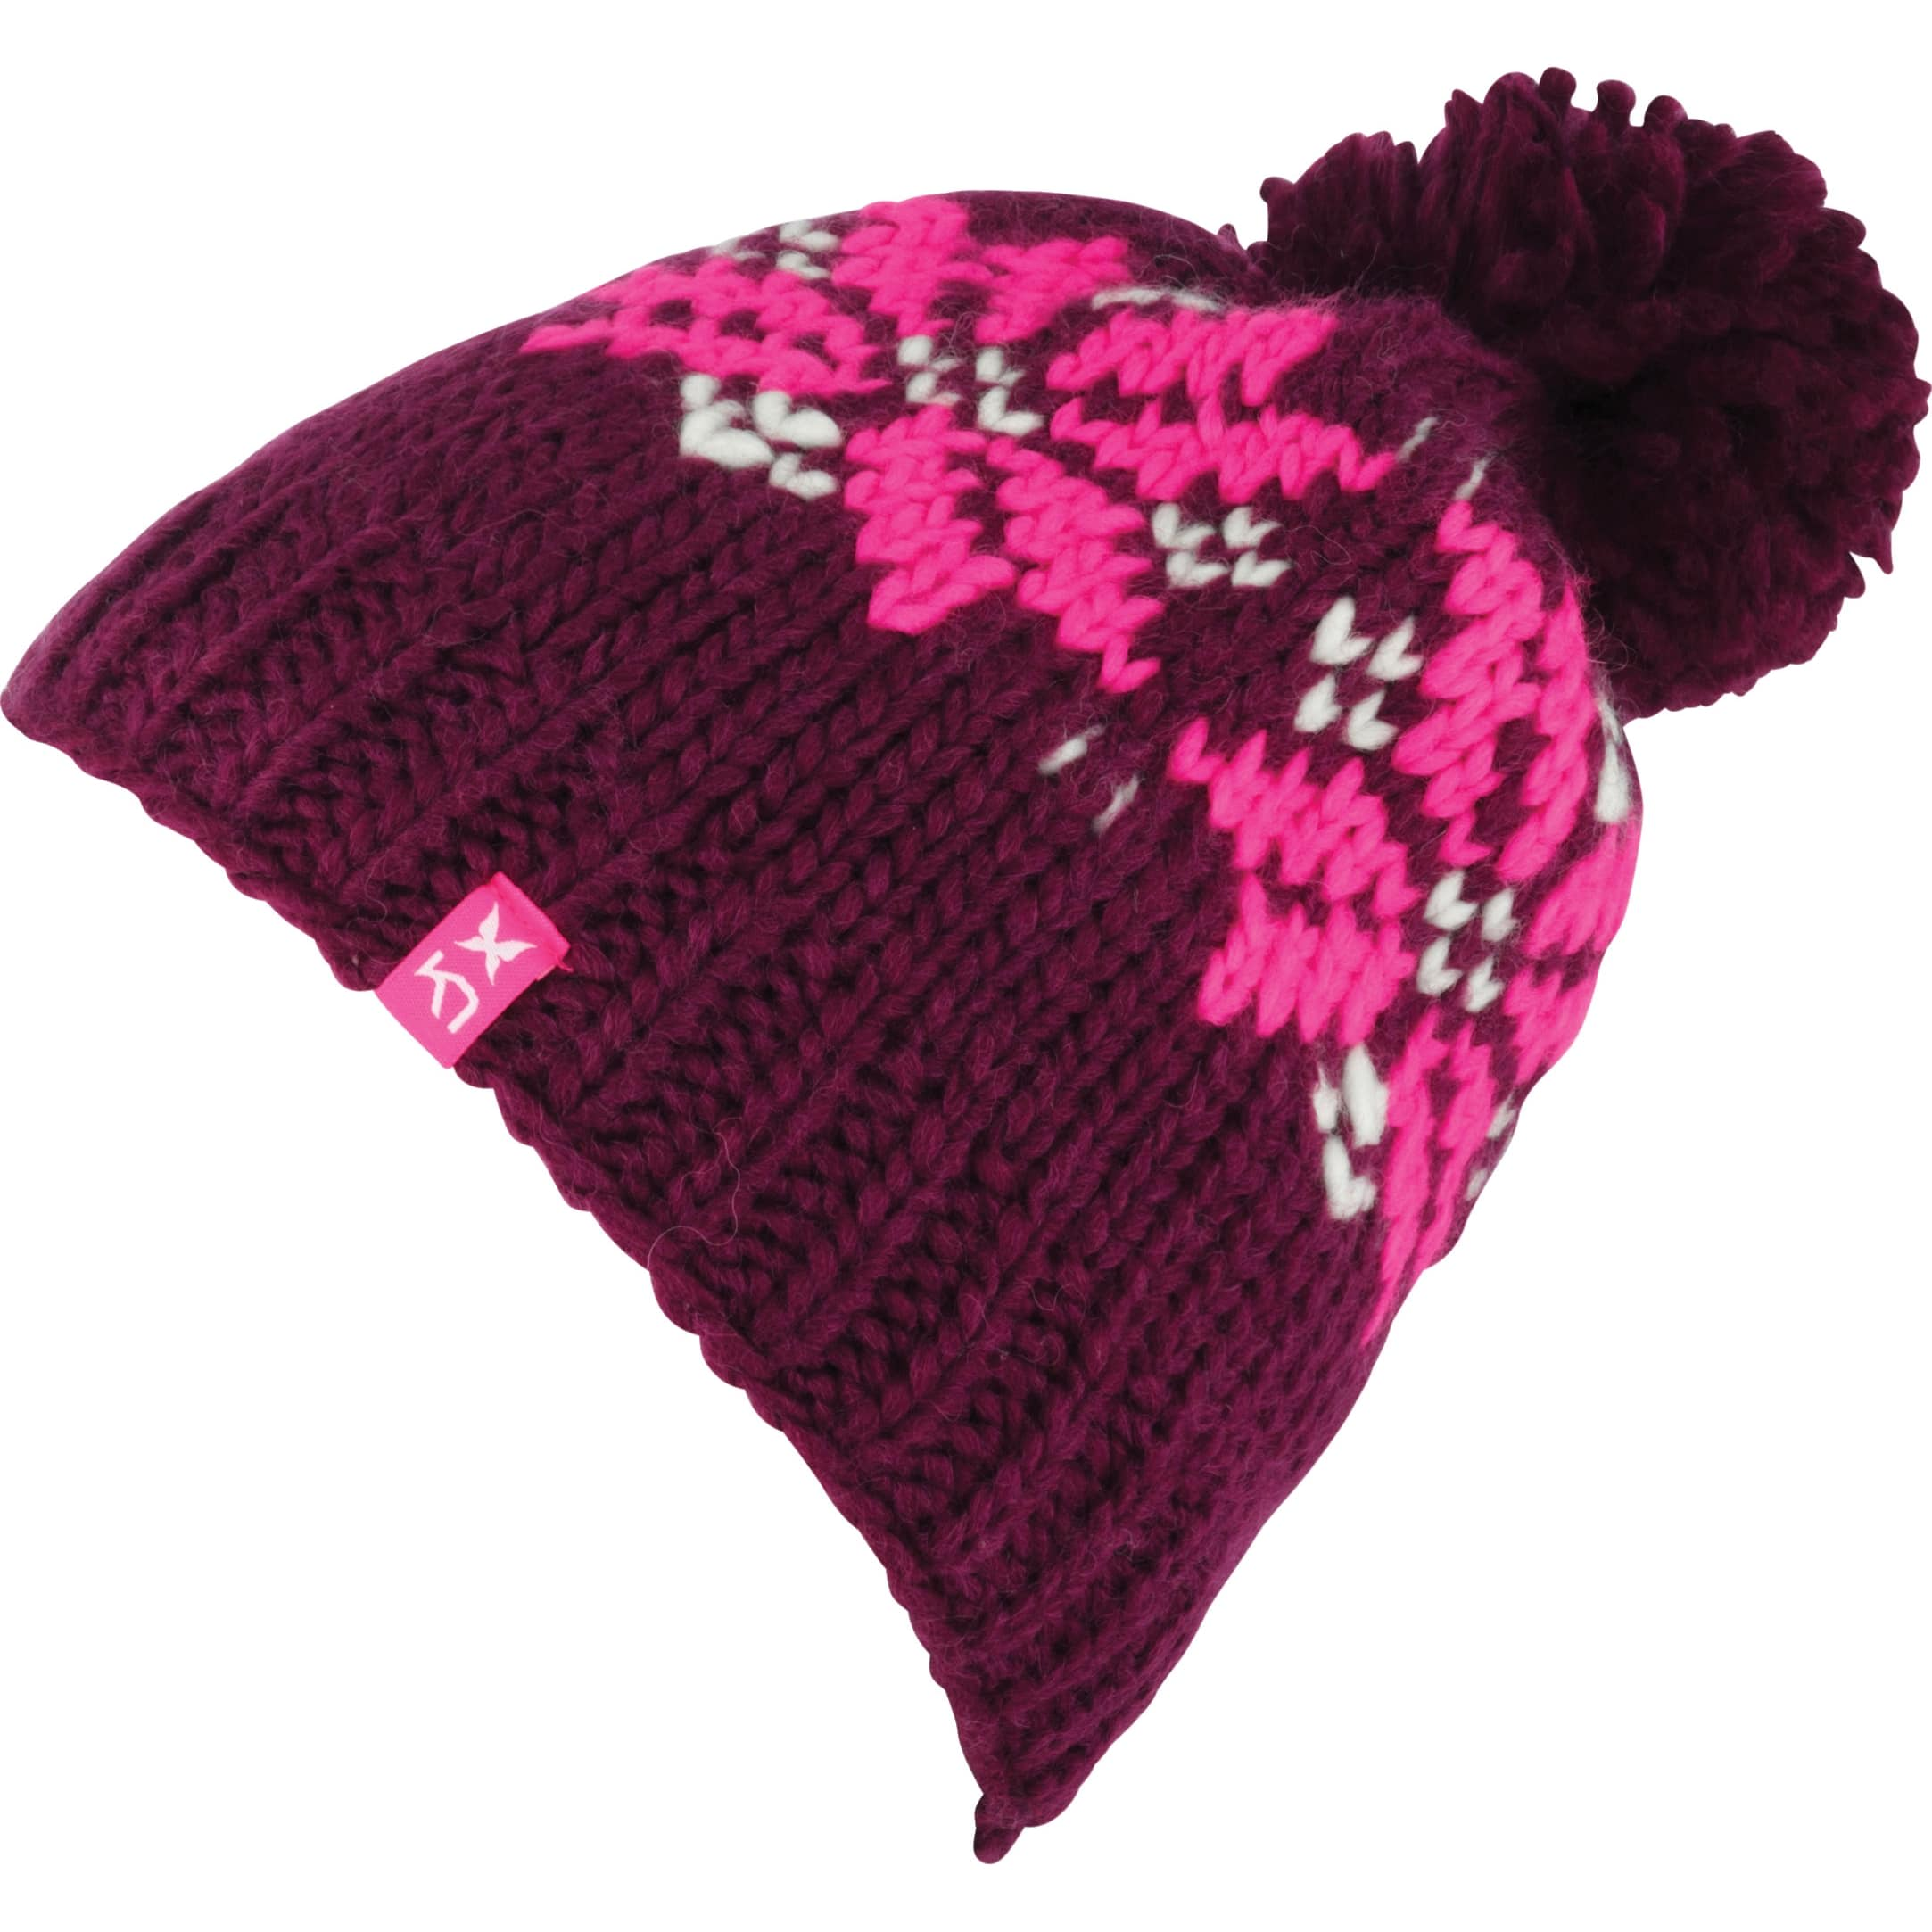 524555610 Buy Kari Traa Lus Beanie from Outnorth